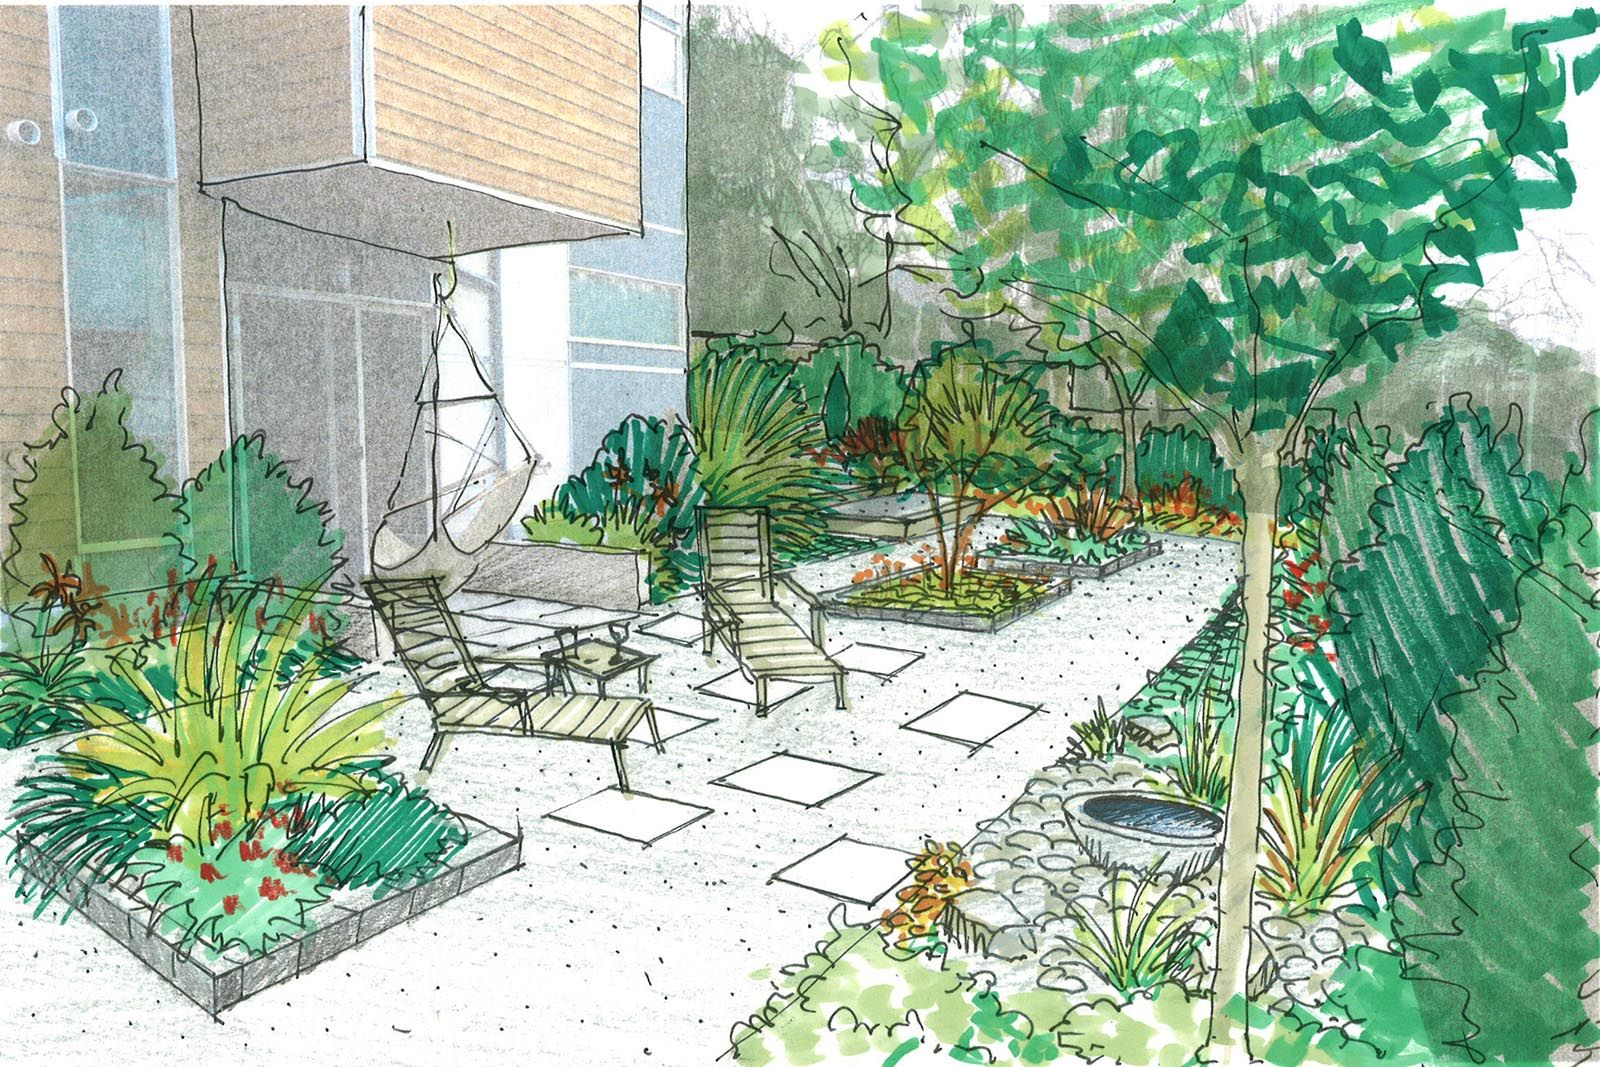 Vegetable garden sketch - The Idea Behind This Design Is To Get Rid Of A Plain Strip Of Lawn Create A Seating Area And Add Some Privacy Planting See More Information At H